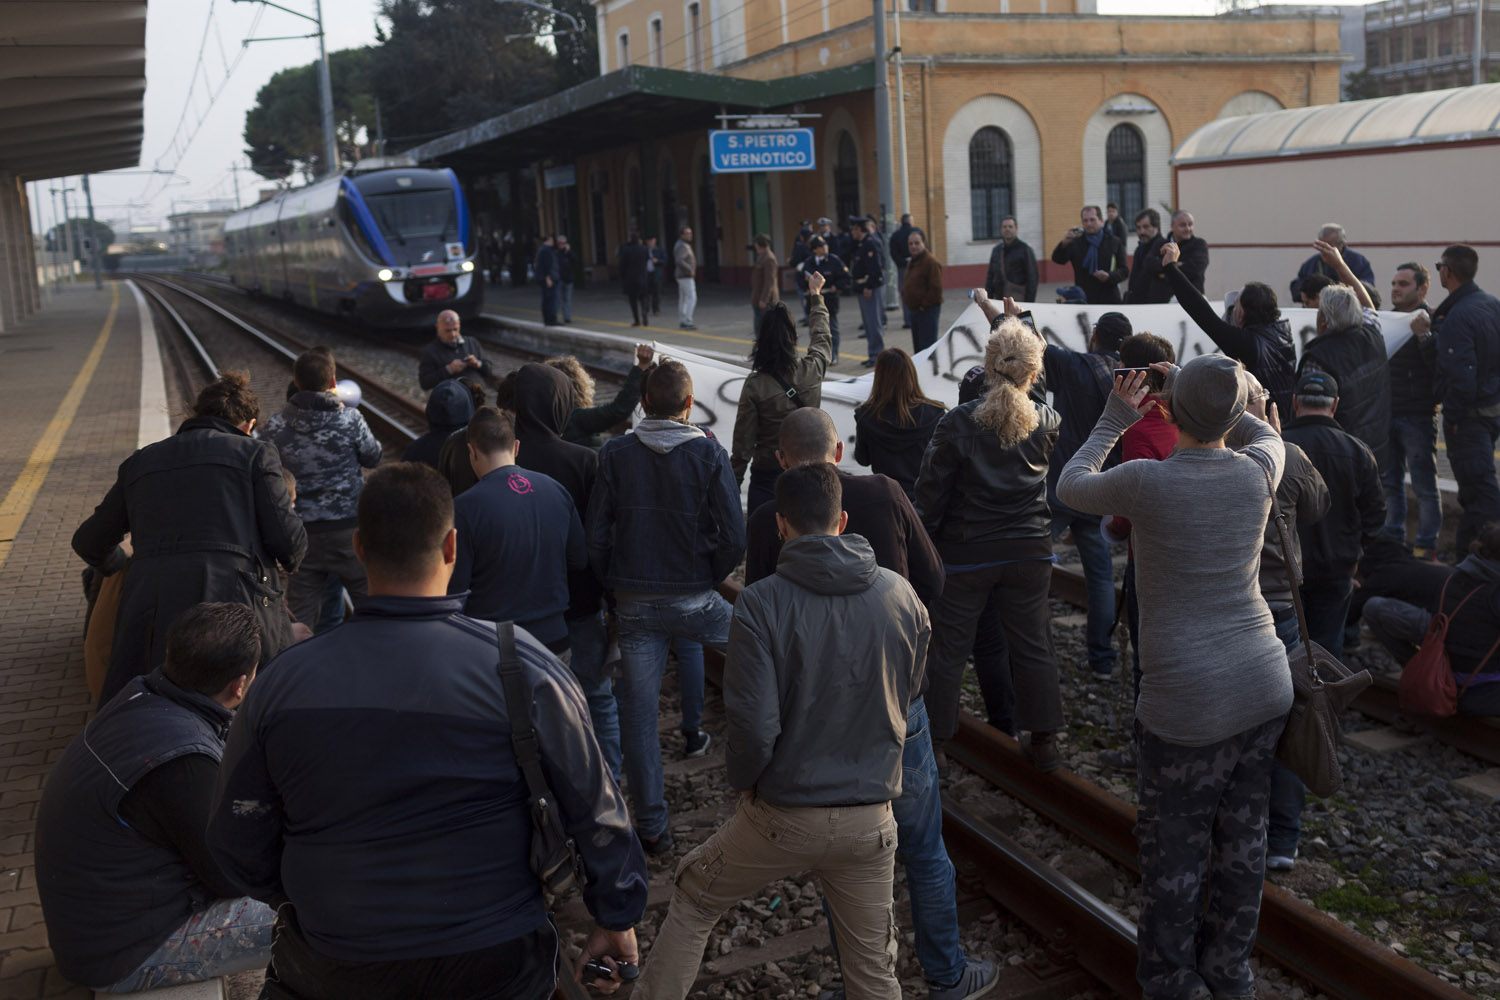 Blocking a train to protest the eradication of olive trees in San Pietro Vernotico. The widespread opposition to the authorities' containment plans eventually resulted in an investigation that effectively put those plans on hold for more than a year, allowing the bacteria to spread unchecked. (2015)